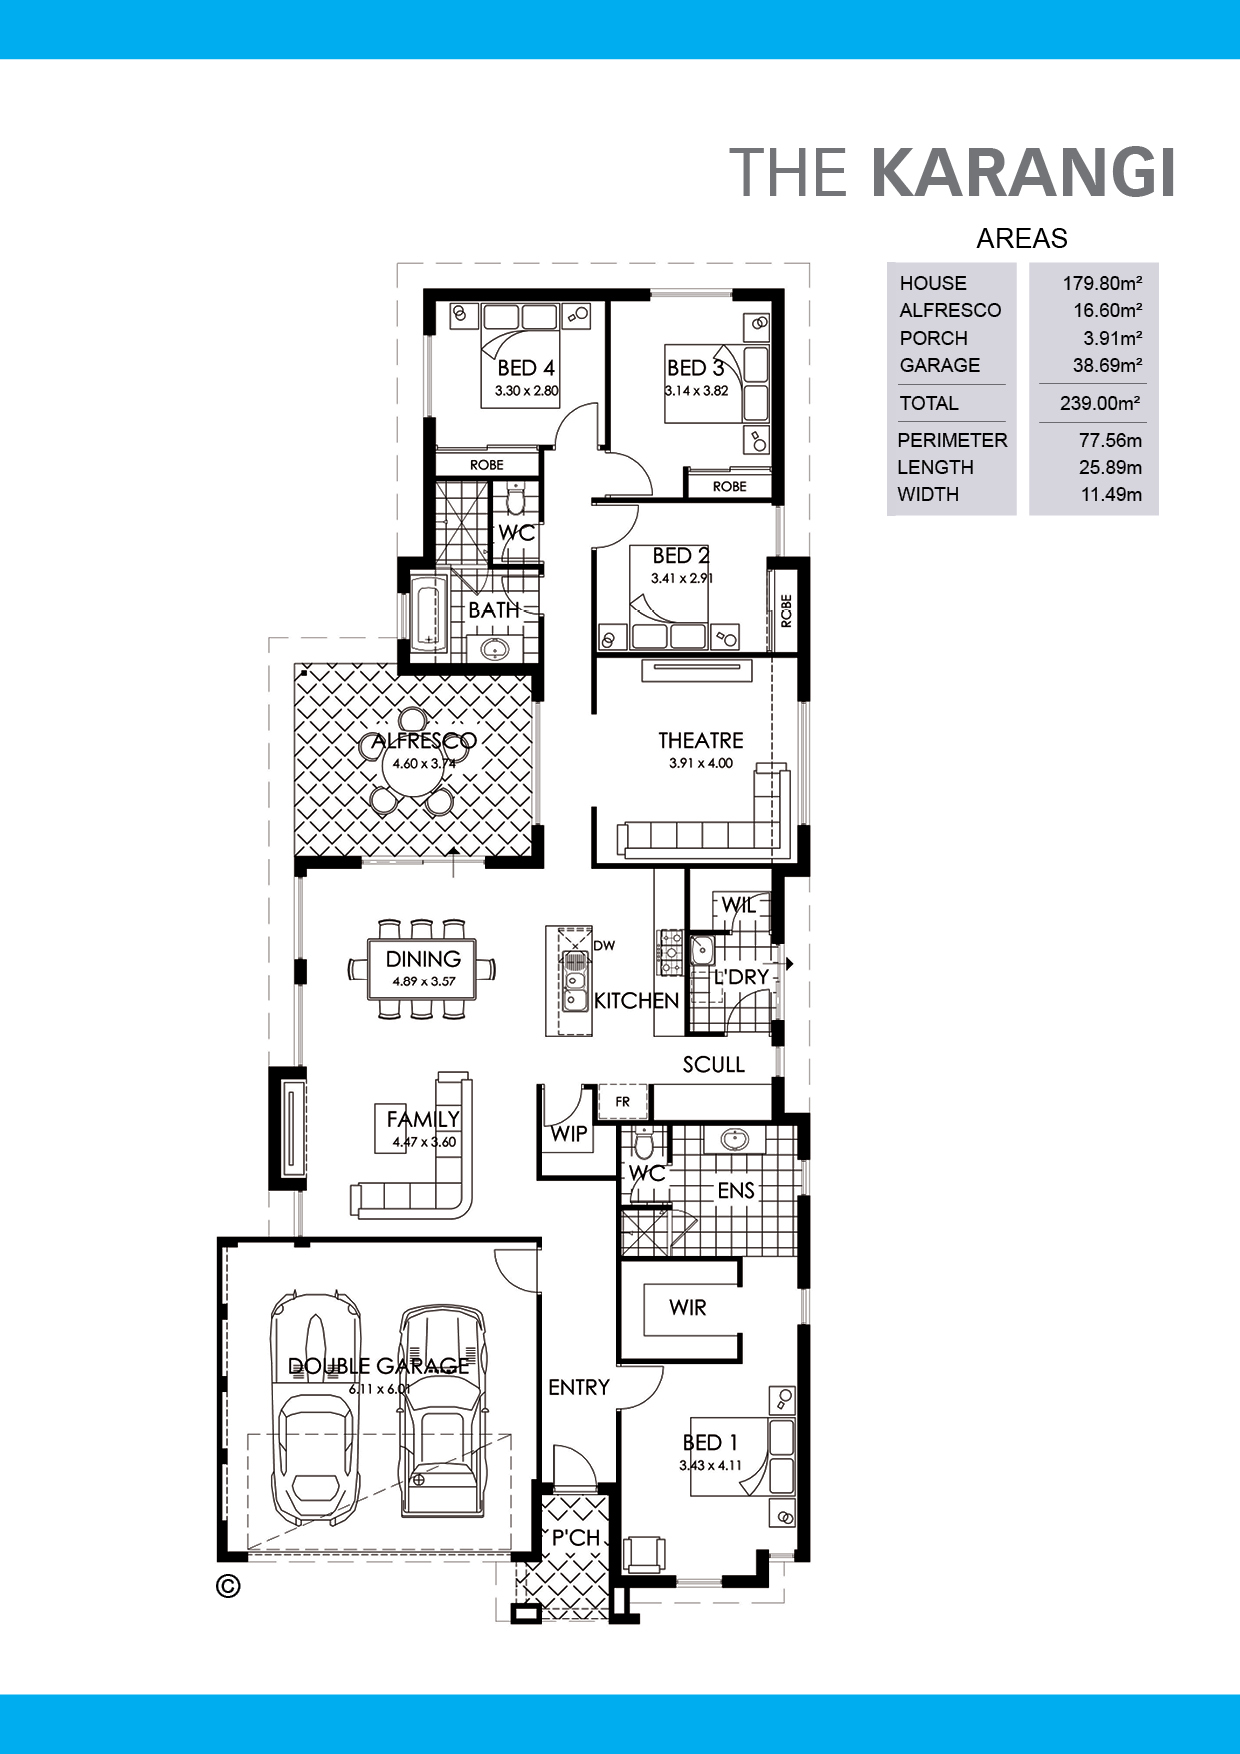 The Karangi Floorplan